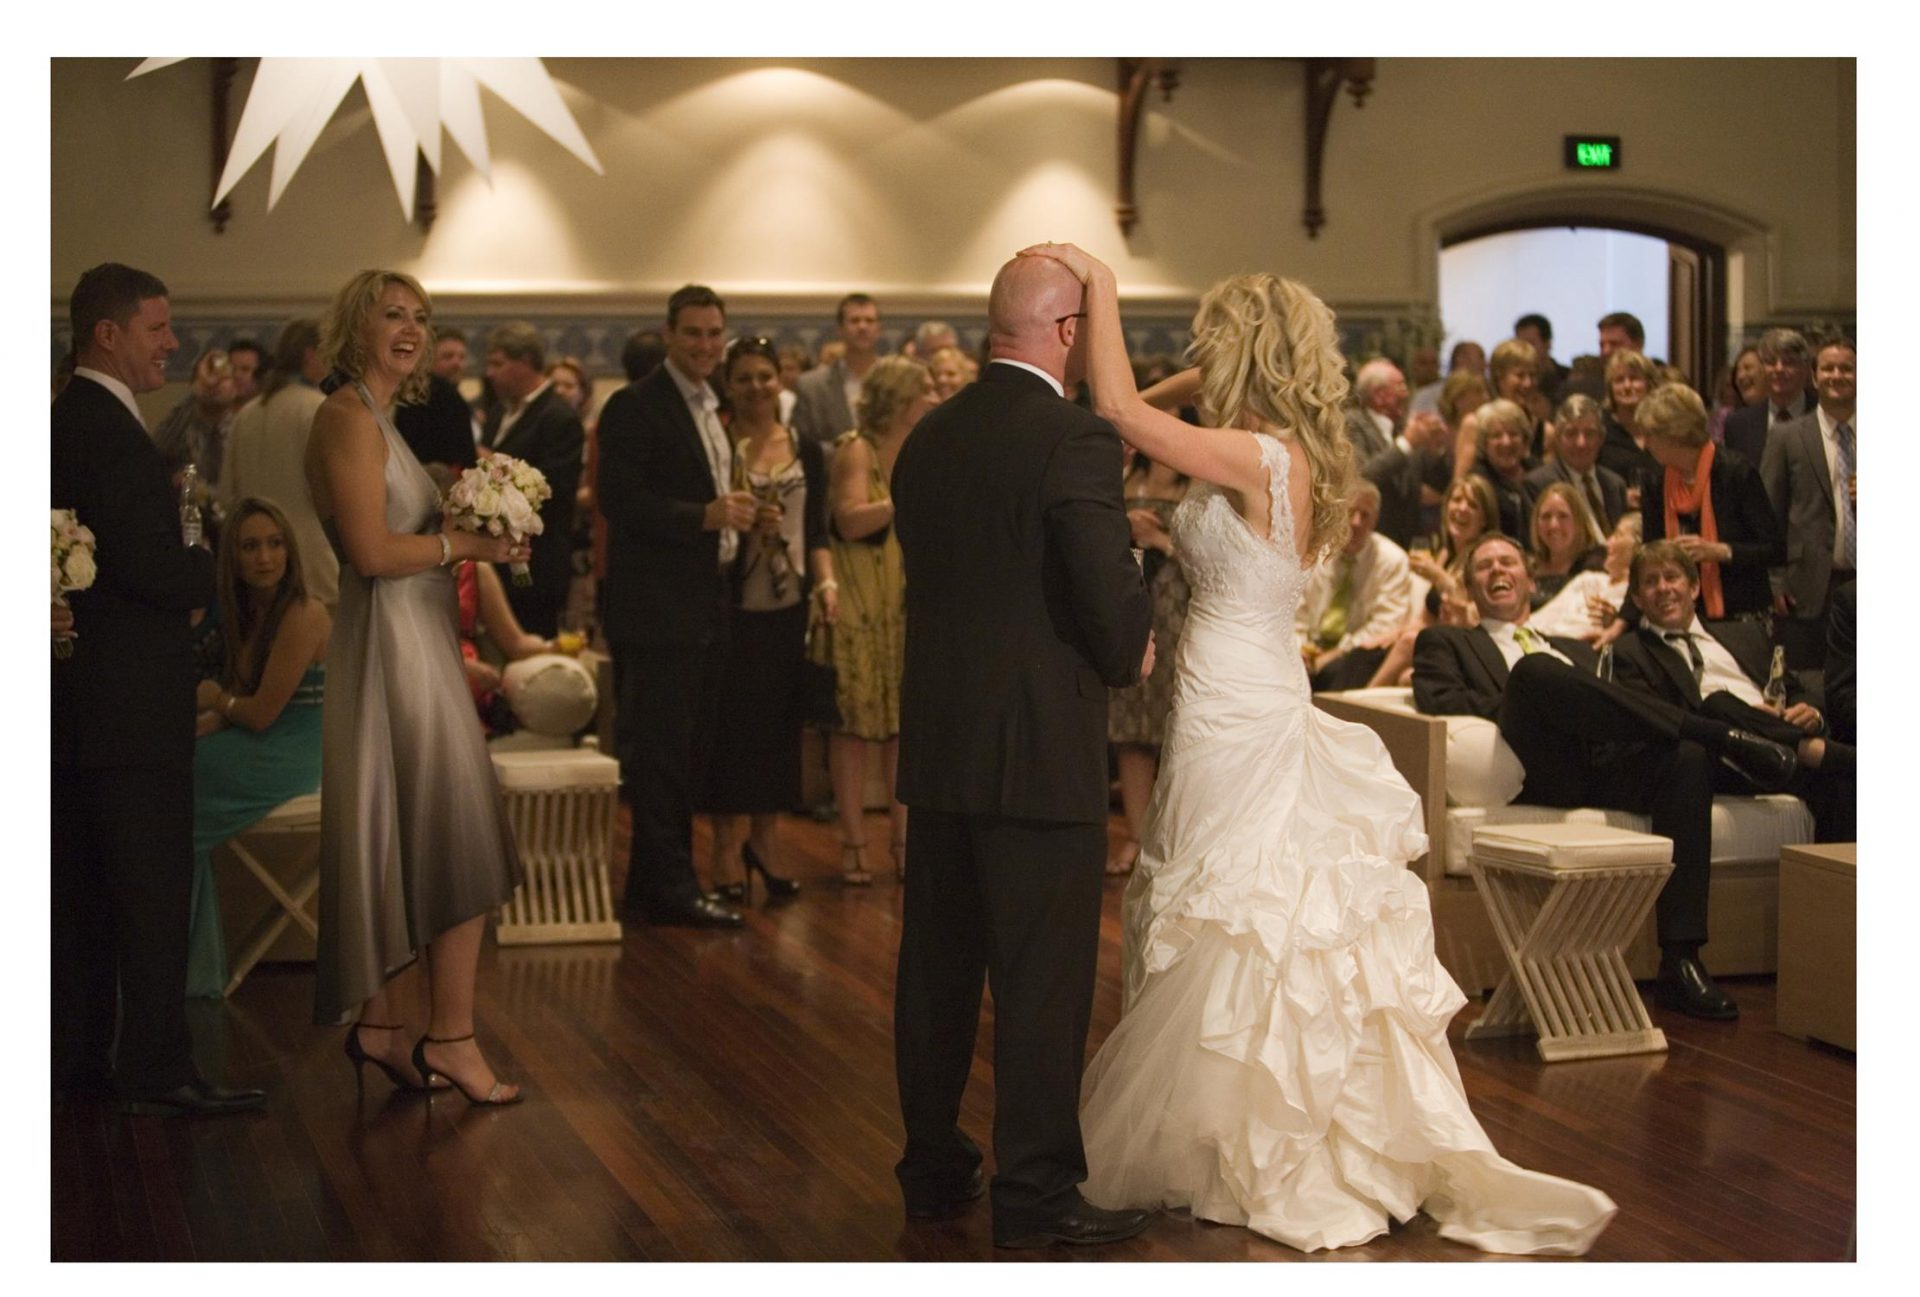 Guildford Grammar School Chapel and reception at Perth Town Hall on 8 November 2008. Image courtesy of Samantha House of Photography.